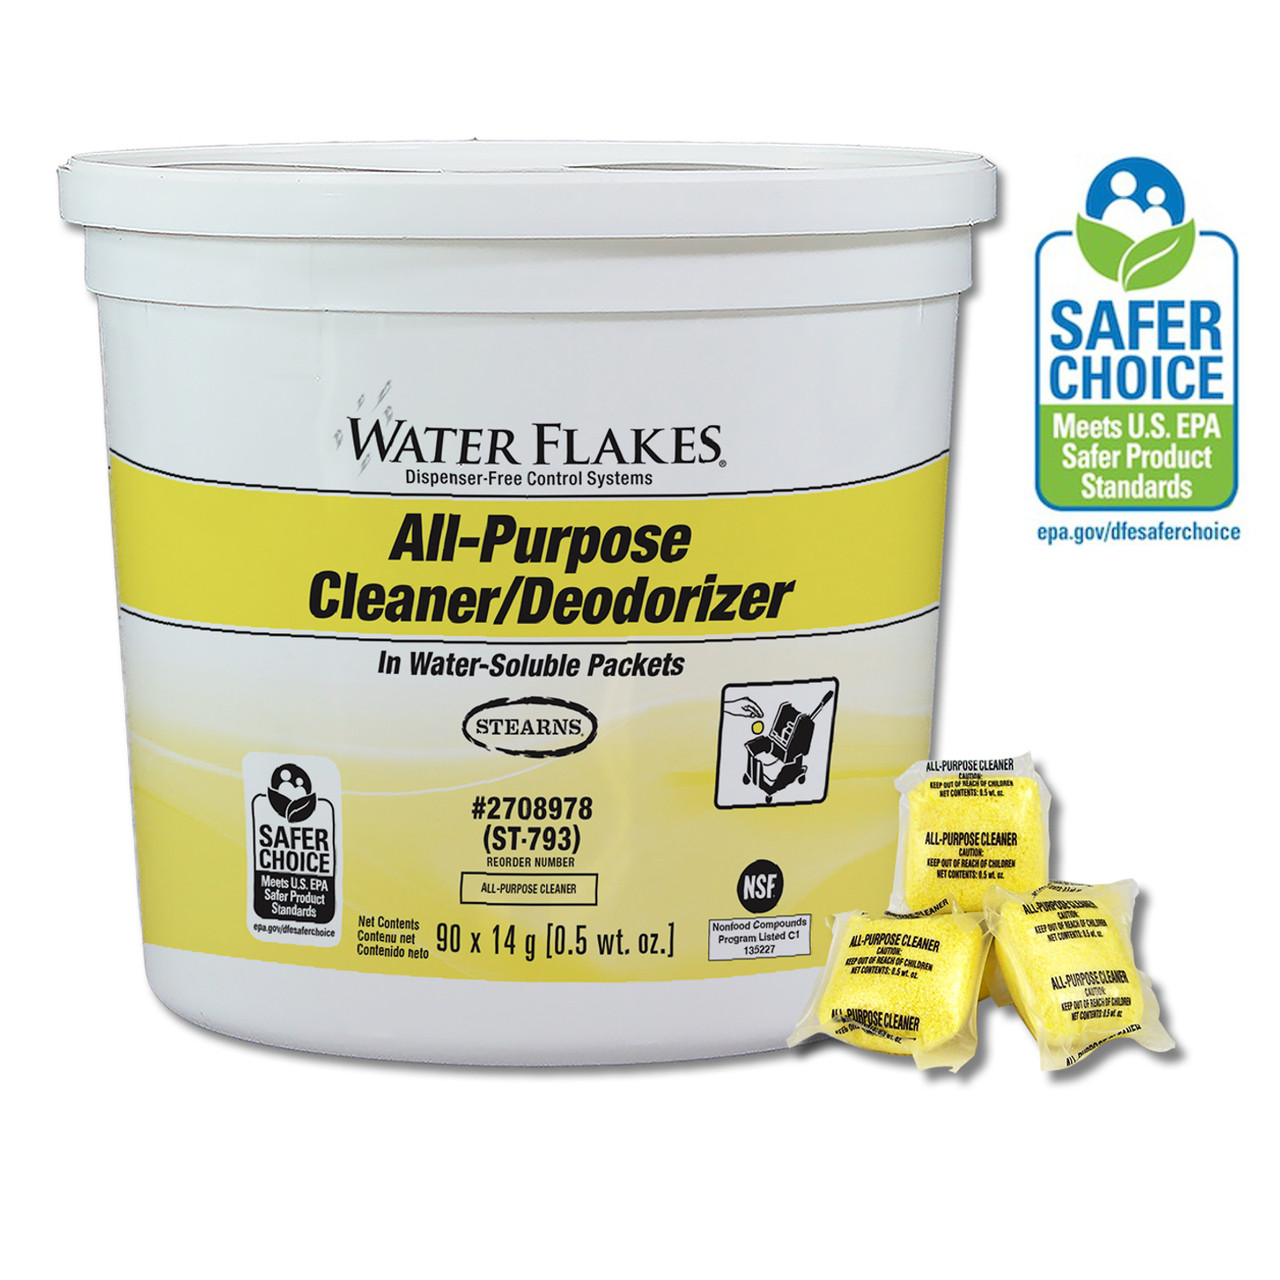 Water Flakes All-Purpose Cleaner Deodorizer is a perfect cleaner for stainless steel, chrome, porcelain, quarry tiles, terrazzo, marble, concrete and most ceramics and painted surfaces.